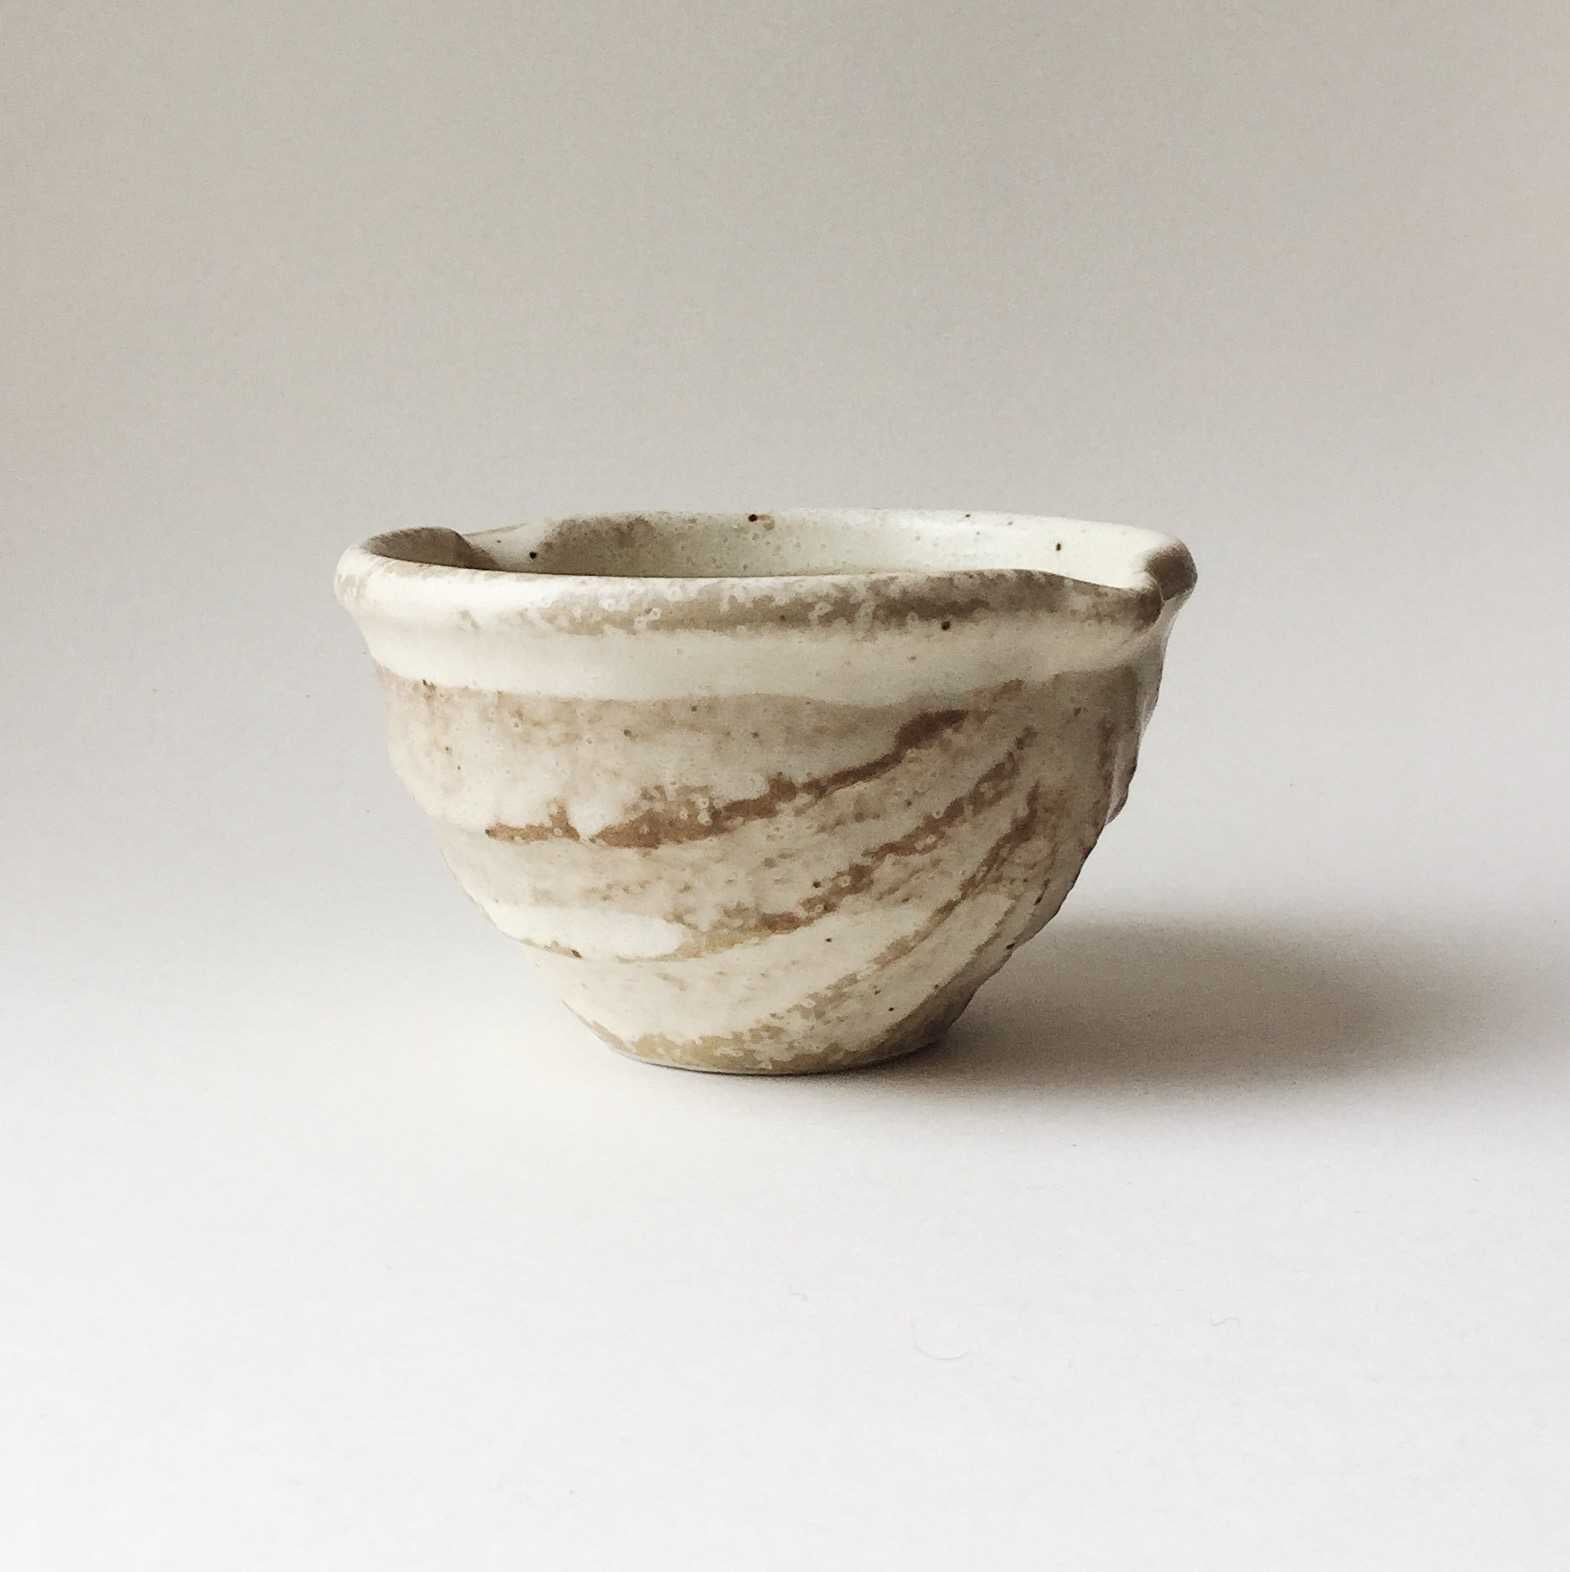 Japan series : Beige/brown little bowl with spout